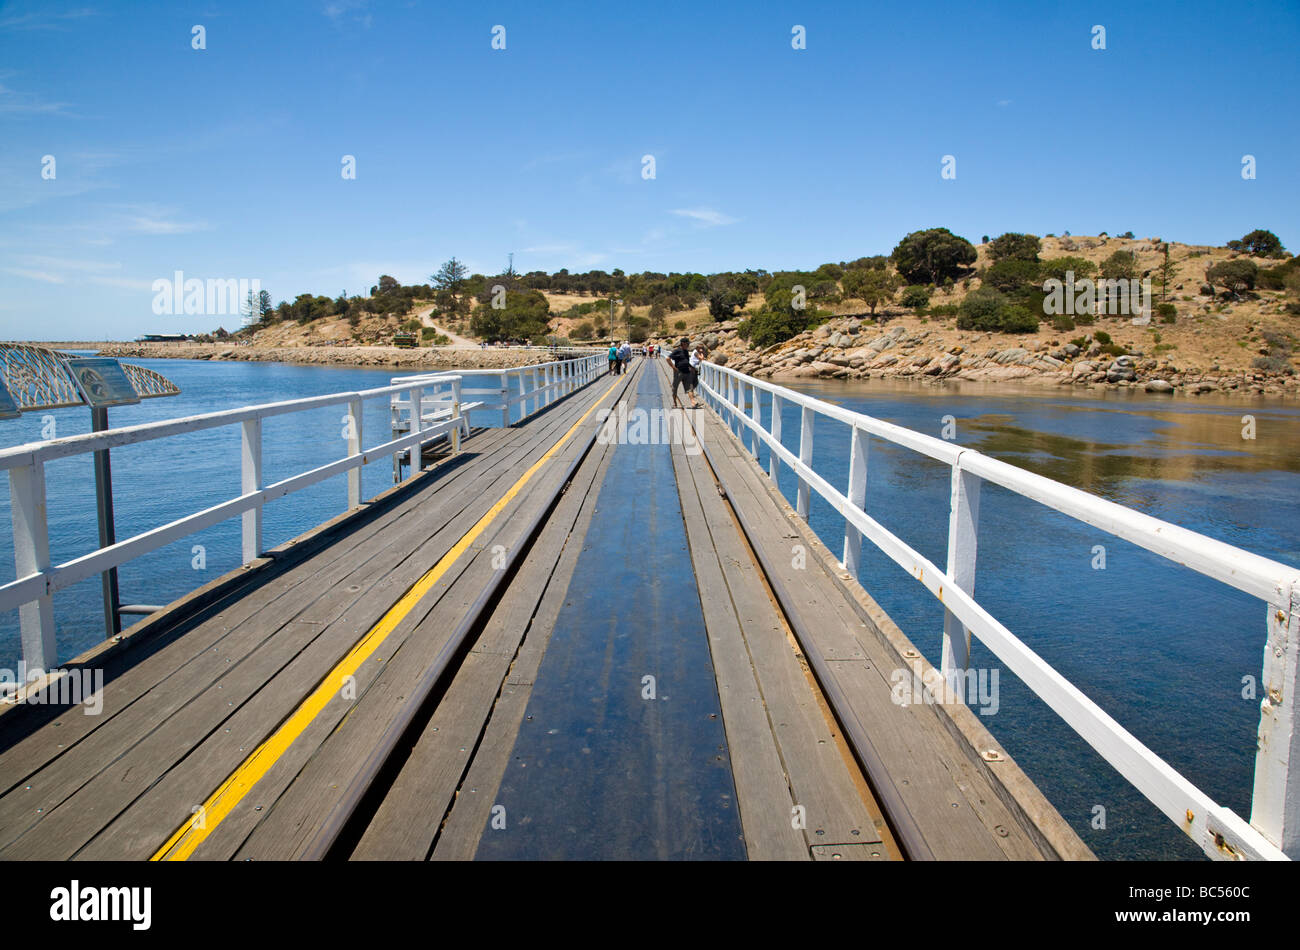 On the causeway between Granite Island and Victor Harbour South Australia - Stock Image